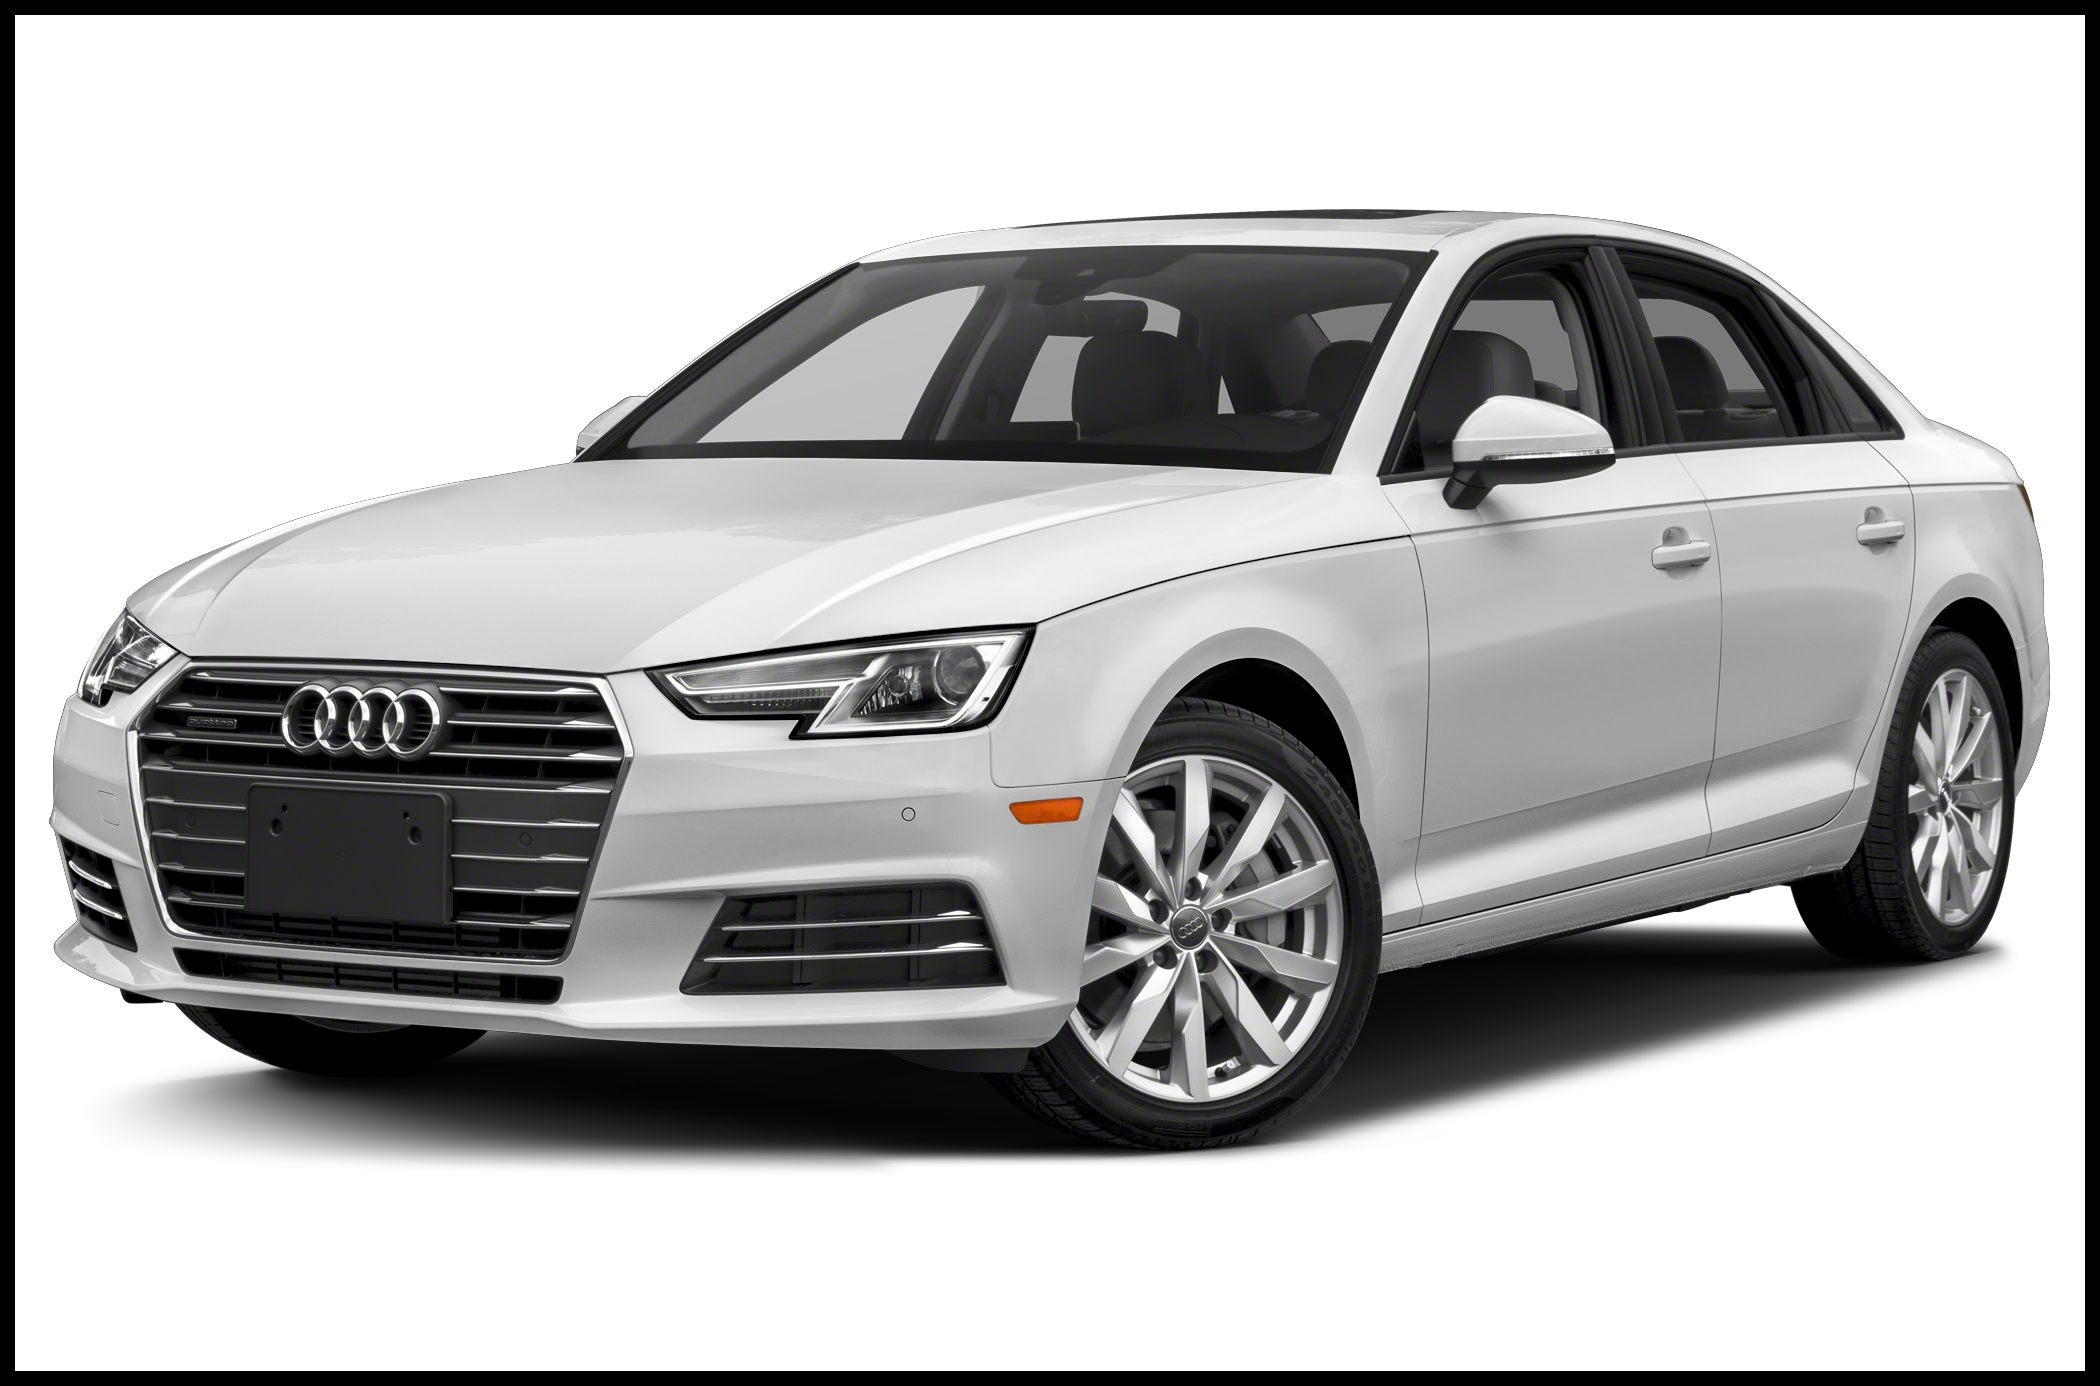 2017 Audi A4 2 0T ultra Premium 4dr Front wheel Drive Sedan Specs and Prices